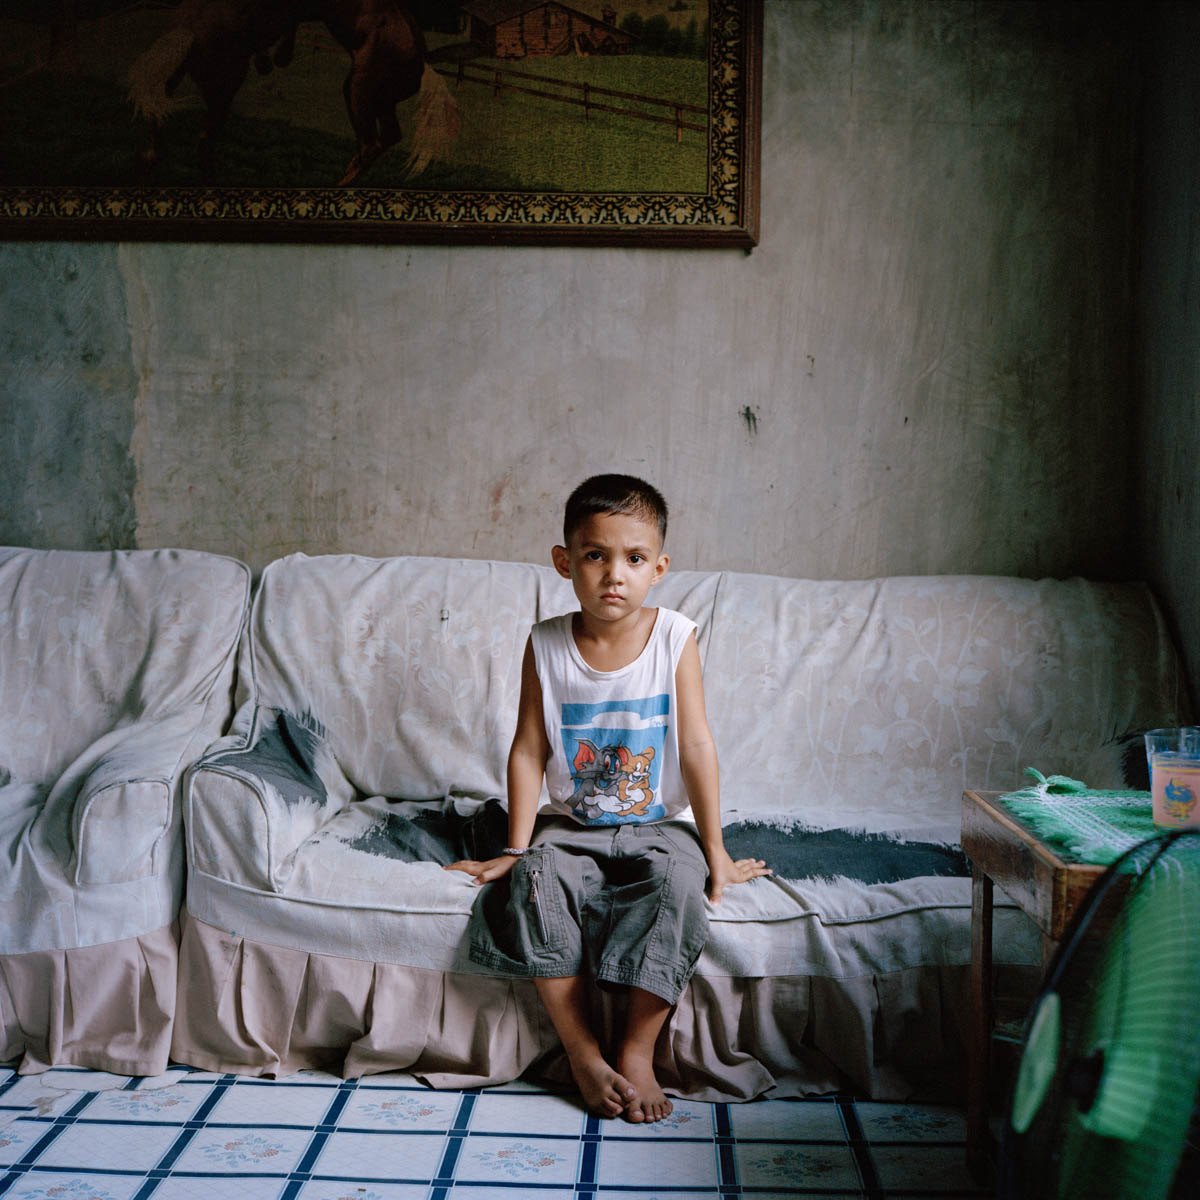 "Jayvee - Jayvee, 5 years old. His mother still has e-mail exchanges with his father, 45, from Wisconsin, USA. However, they get no financial support from him. Angeles City, Philippines, August 2014. - Copyright © © S. Borcard - N. Metraux - Angeles - Central Luzon - Philippines - <A href=""https://maps.google.com/?ll=15.168055,120.586388&z=16"" target=""_blank"">(Map Jayvee)</A>"